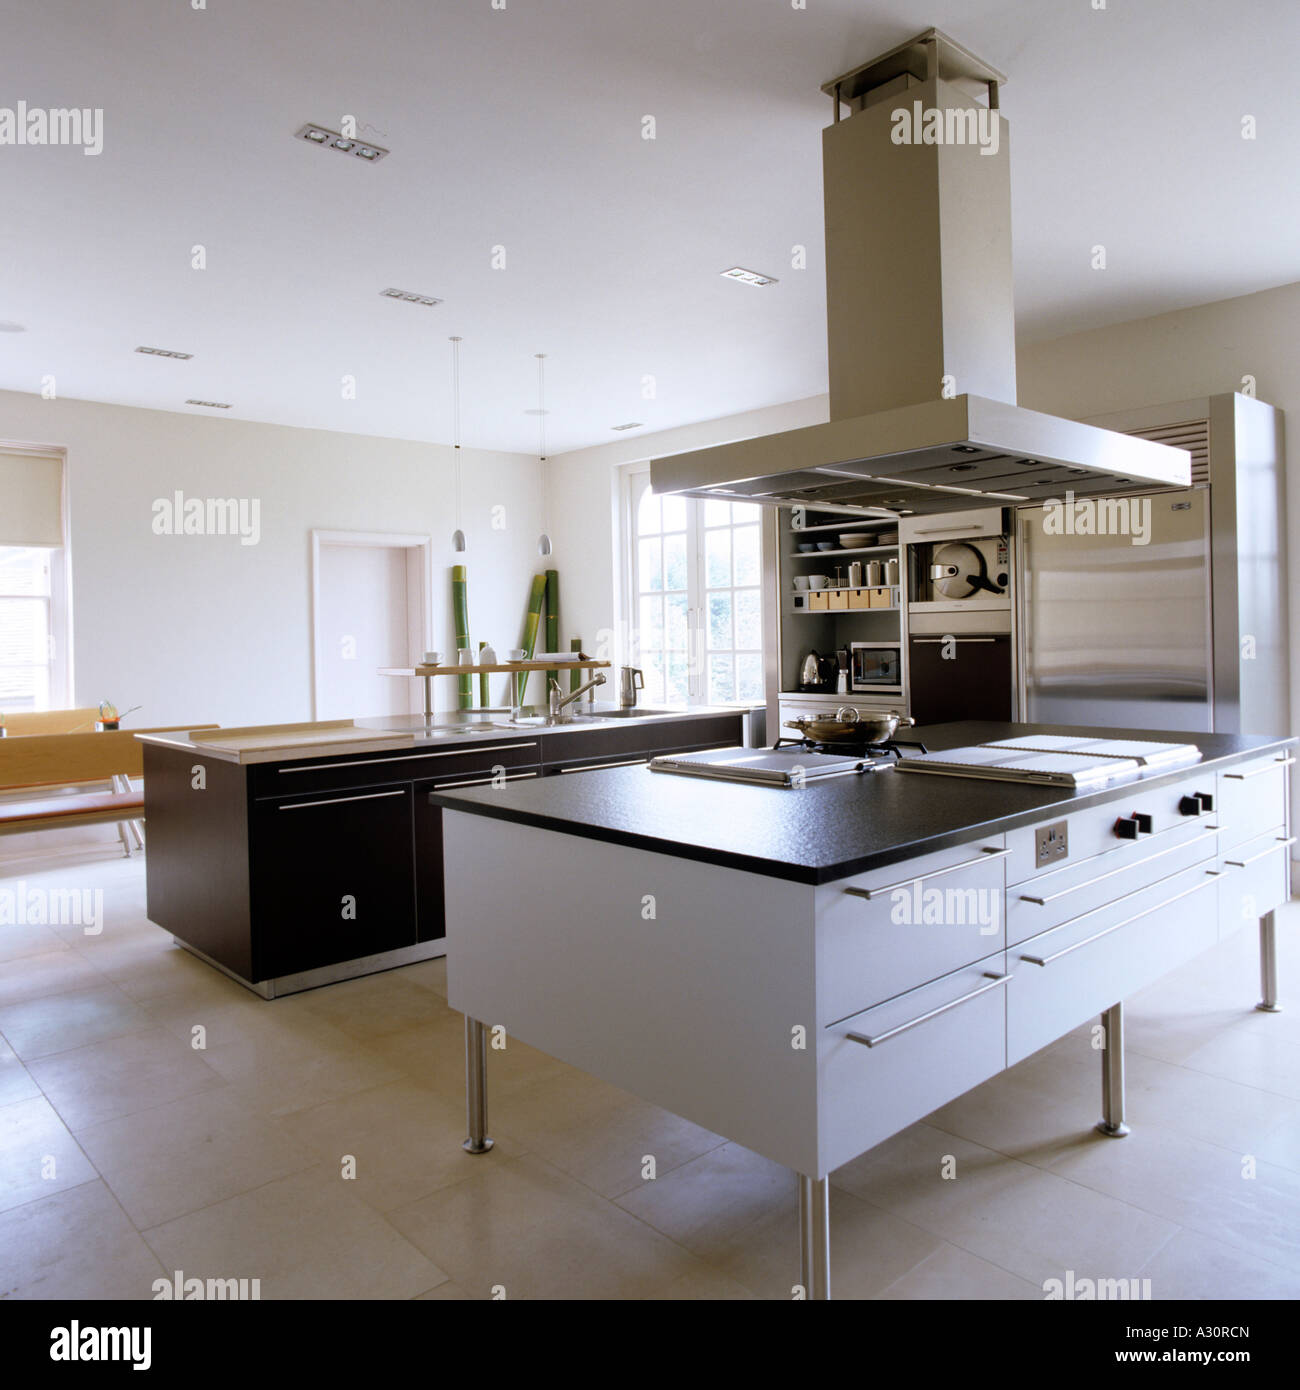 kitchen extractor fan. Modern Kitchen With Island And Large Extractor Fan R